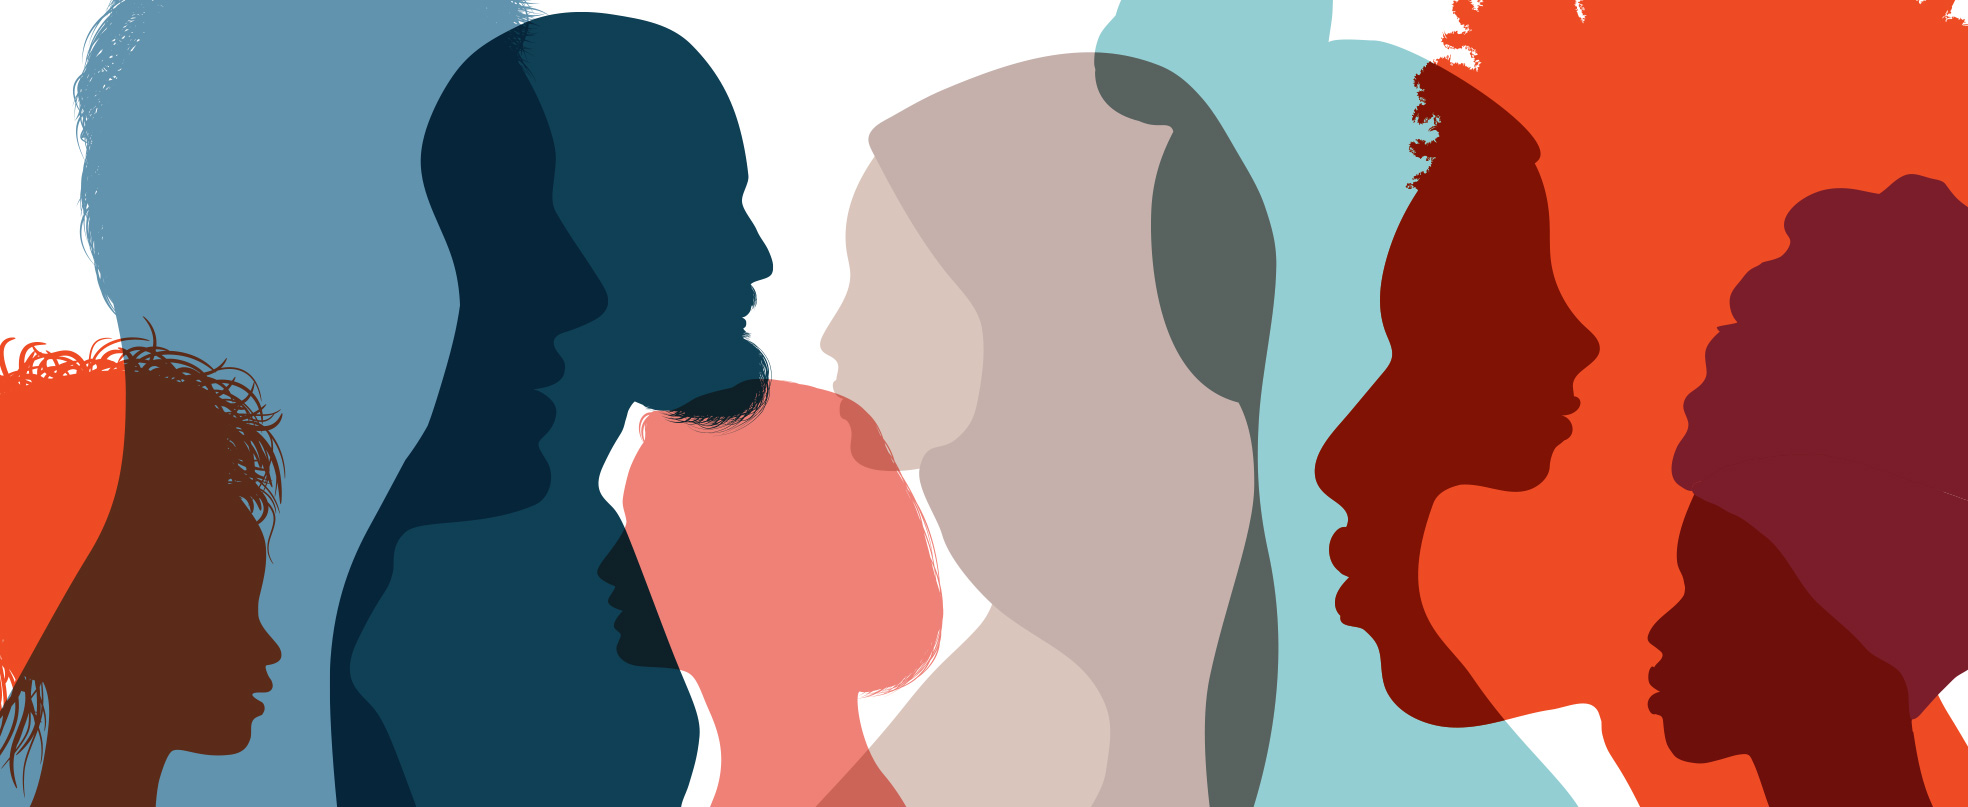 Profiles of a diverse group of people